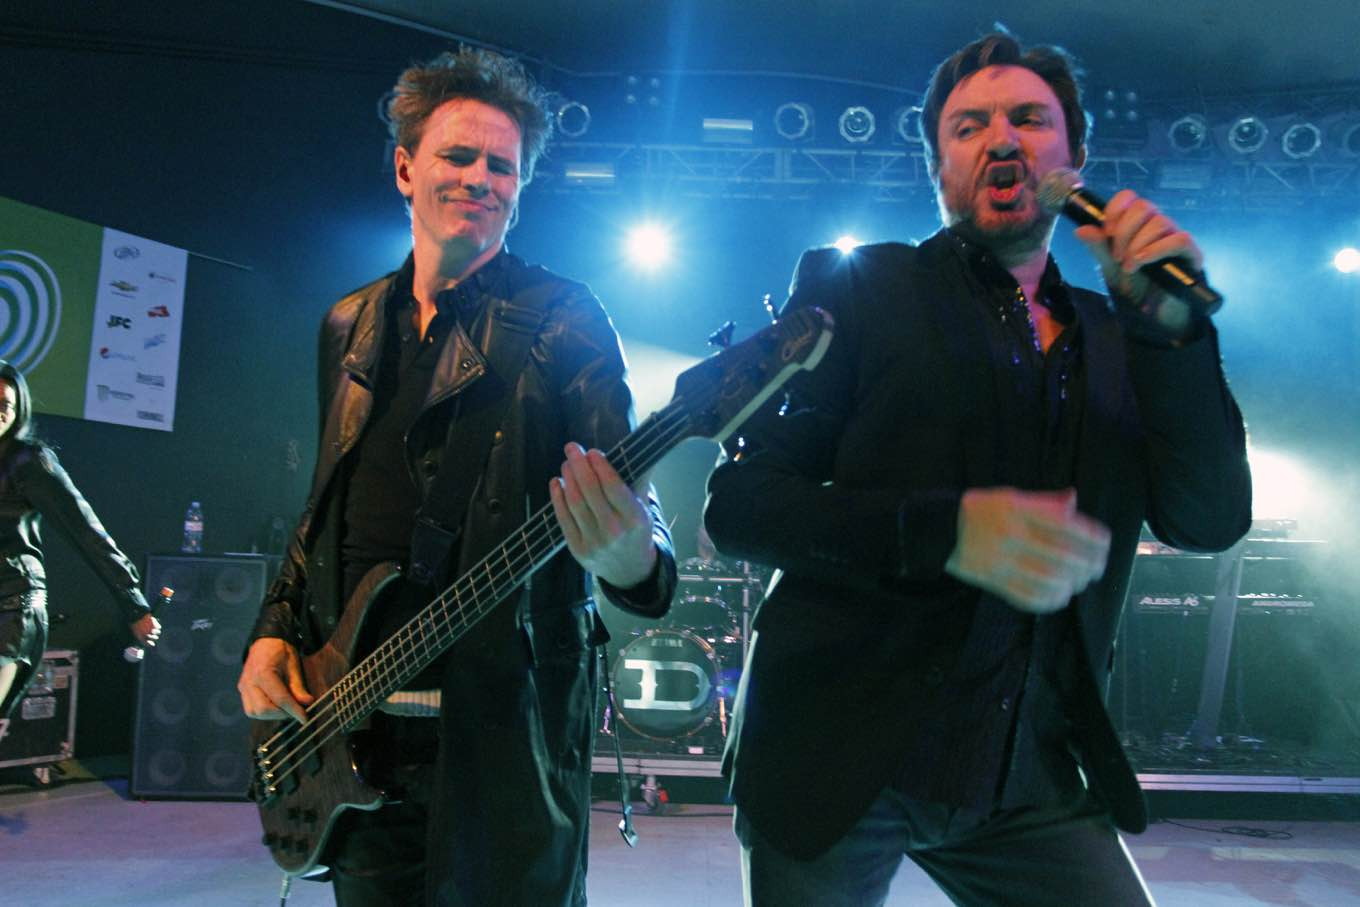 Simon LeBon, right, and John Taylor, of Duran Duran, perform at the SXSW Music Festival in Austin, Texas early Thursday, March 17, 2011. (AP Photo/Jack Plunkett)